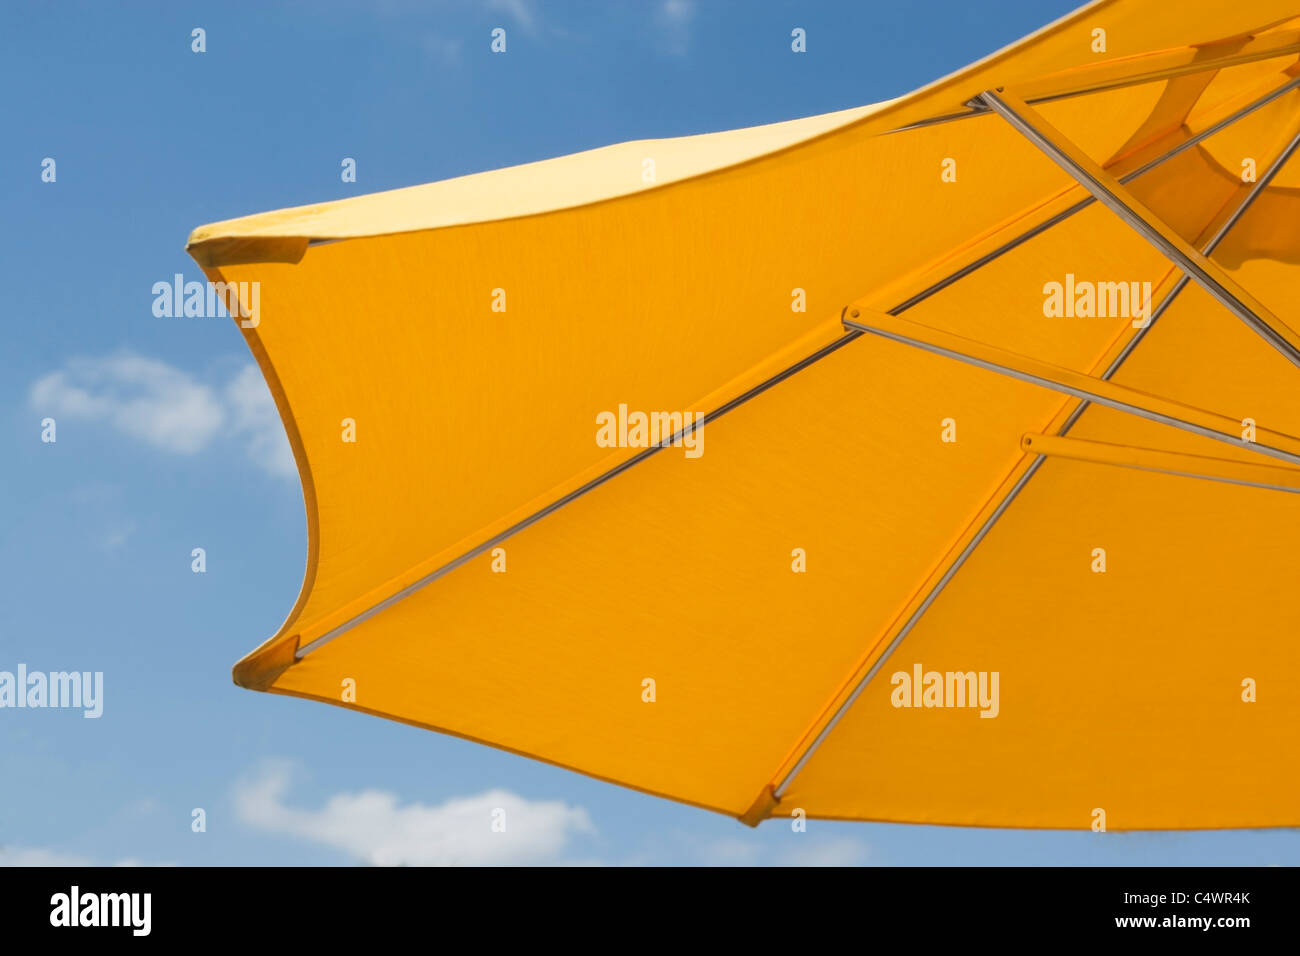 USA, Florida, Miami, Yellow sunshade against blue sky - Stock Image